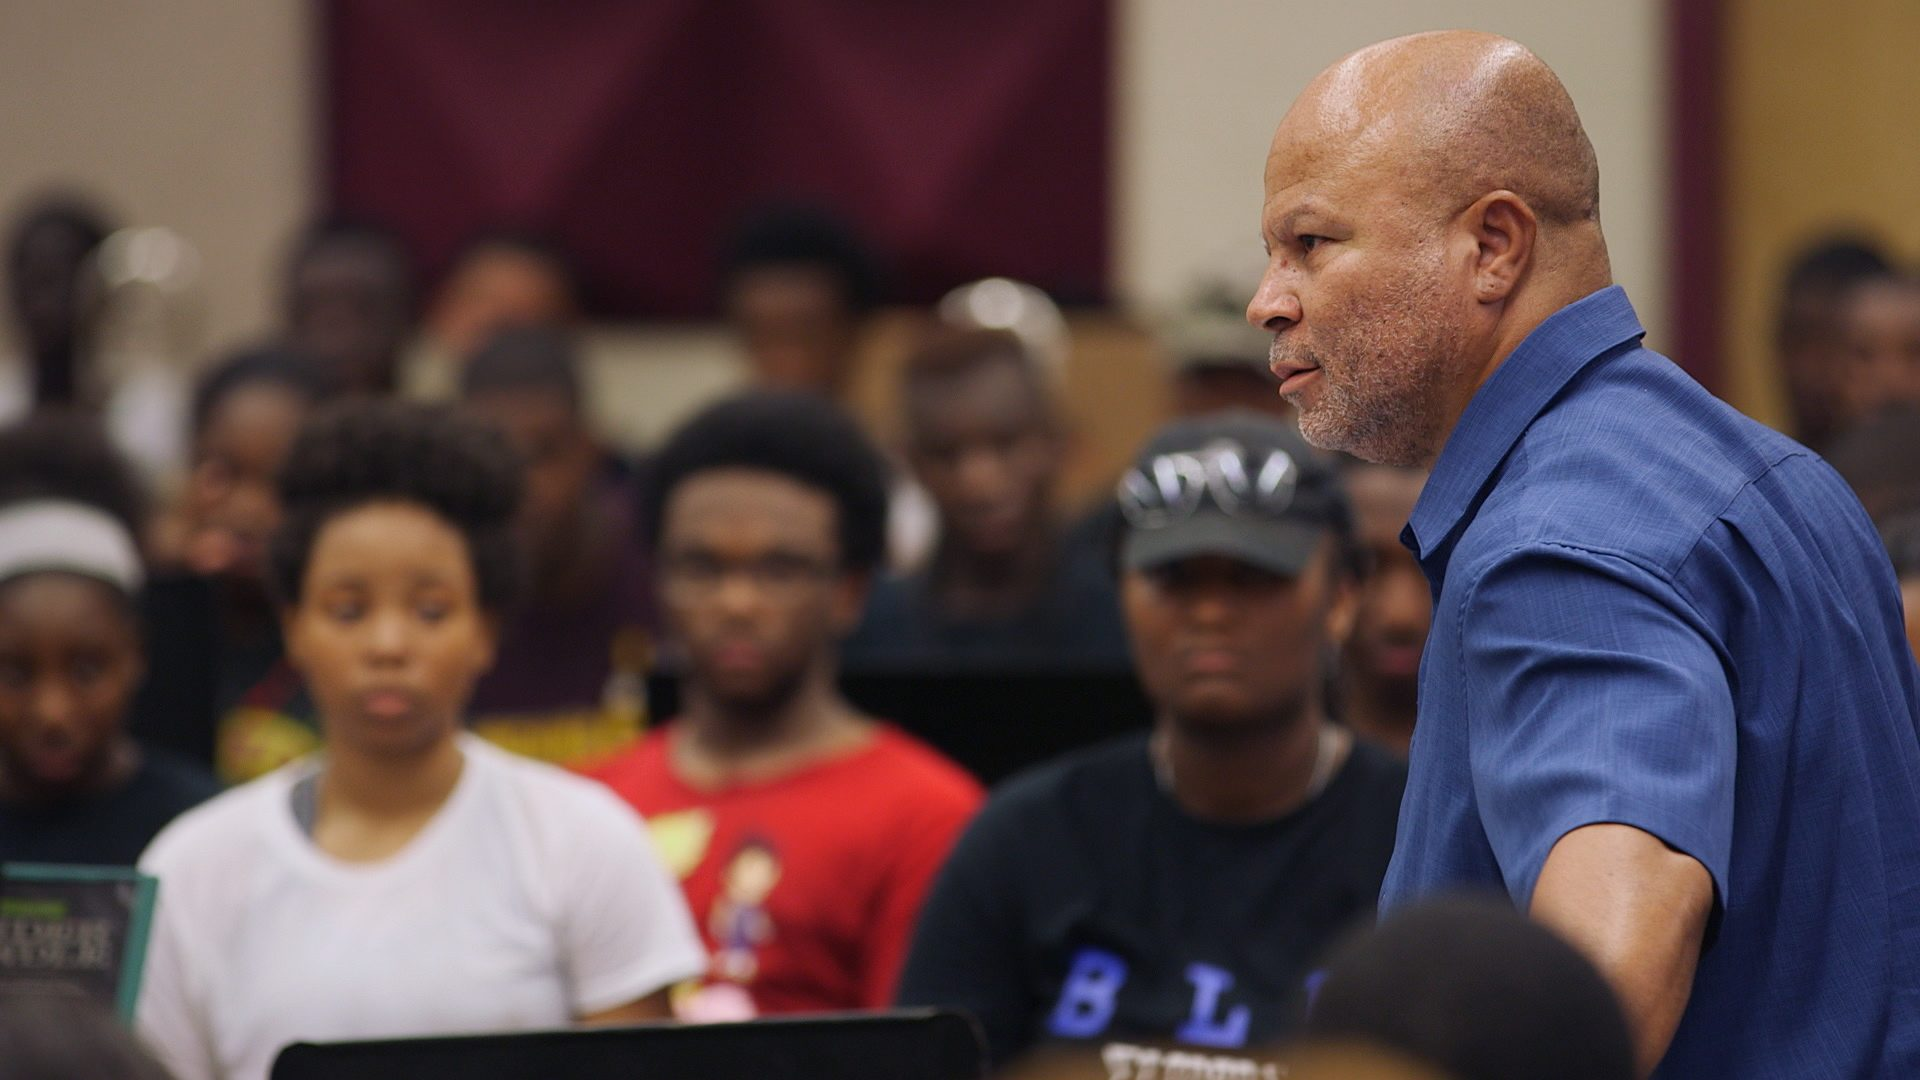 Band Leader, Director, Donovan Wells, Pracice, Rehearsal, Bethune-Cookman University, BCU, Marching Wildcats, Marching Orders, Stage 13 Original, stage13network